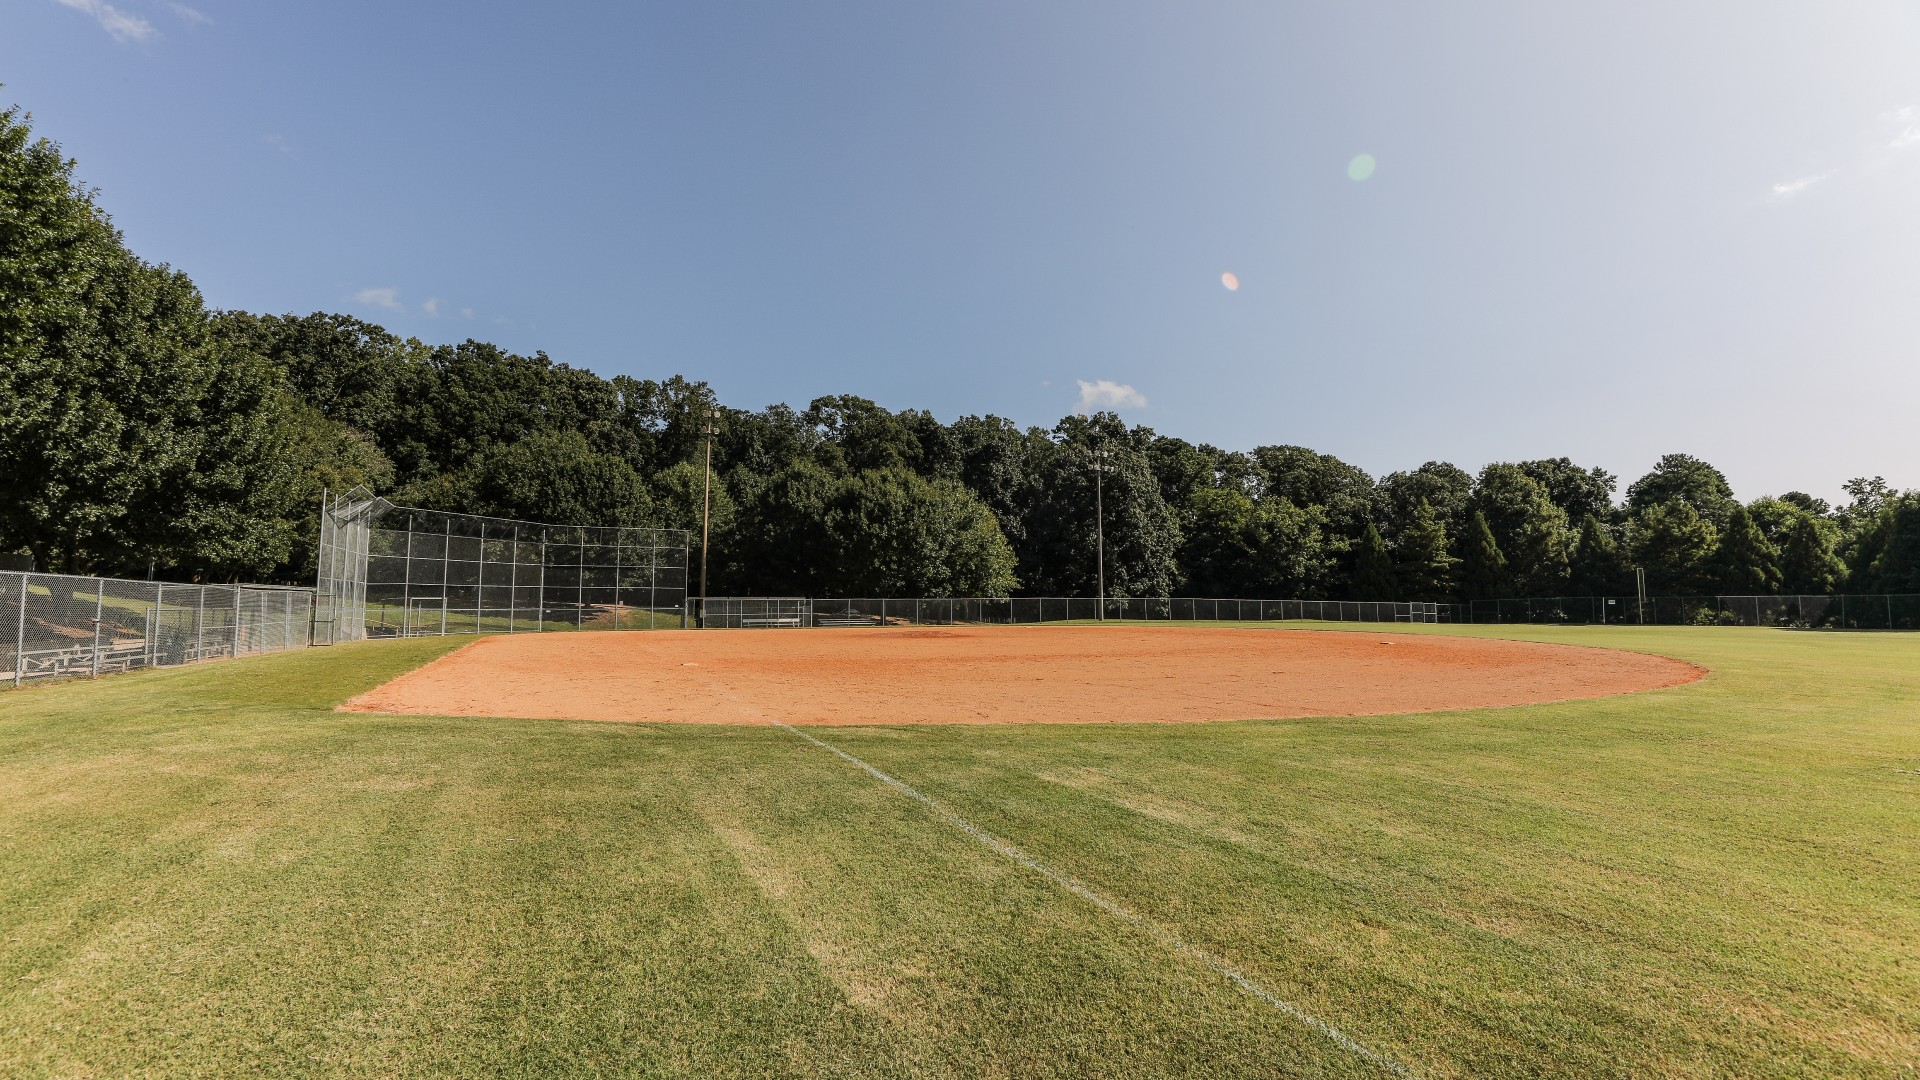 A fourth baseball diamond used for youth baseball